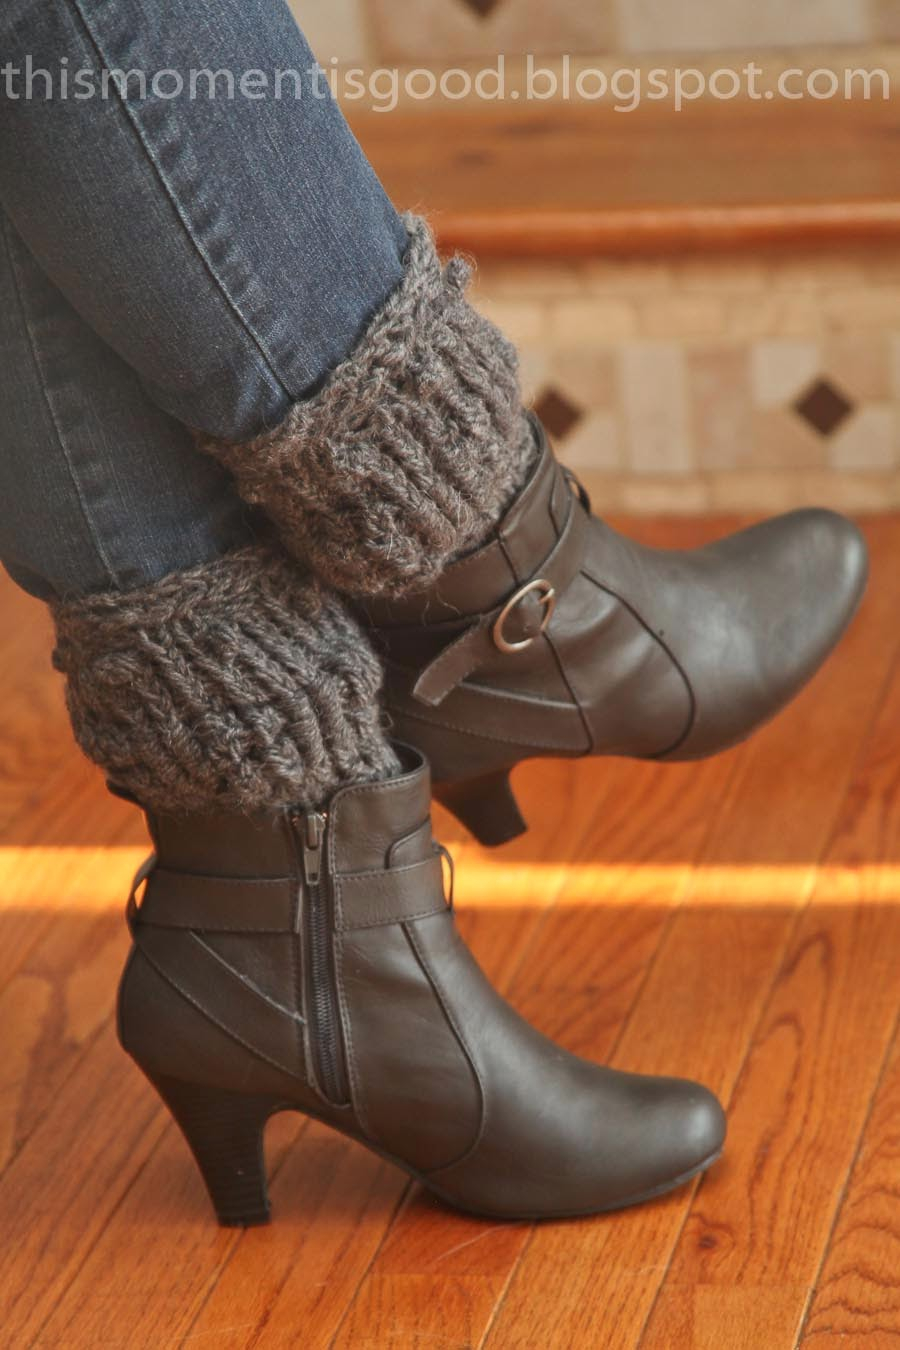 Free Knitting Patterns For Boot Toppers Loom Knit Textured Boot Topperscuffs Loom Knitting This Moment